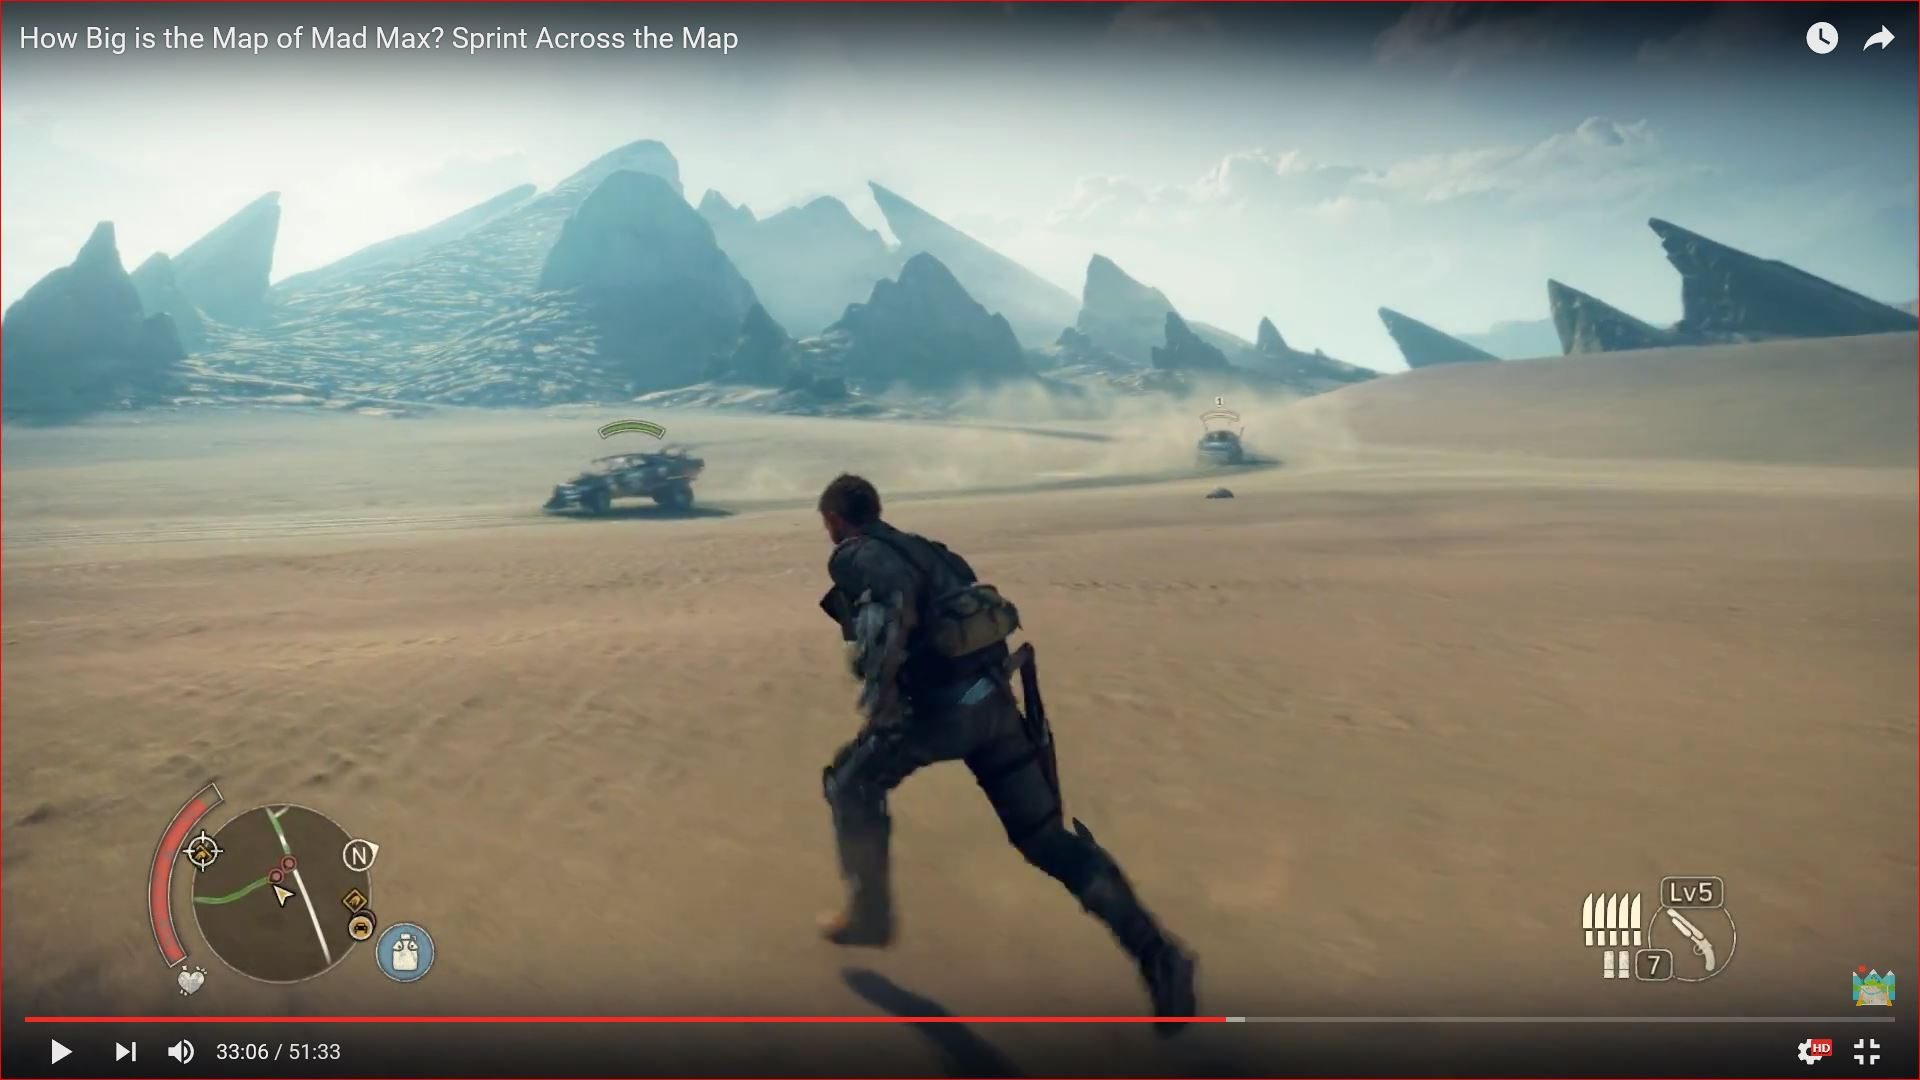 Mad Max sprint n - How Big is the Map Mad Max Game Map on battlefield 4 game map, the hunger games game map, grand theft auto game map, wasteland 2 game map, forza horizon 2 game map, far cry 4 game map, thief game map, dead island game map, assassin's creed unity game map, the dark knight rises game map,